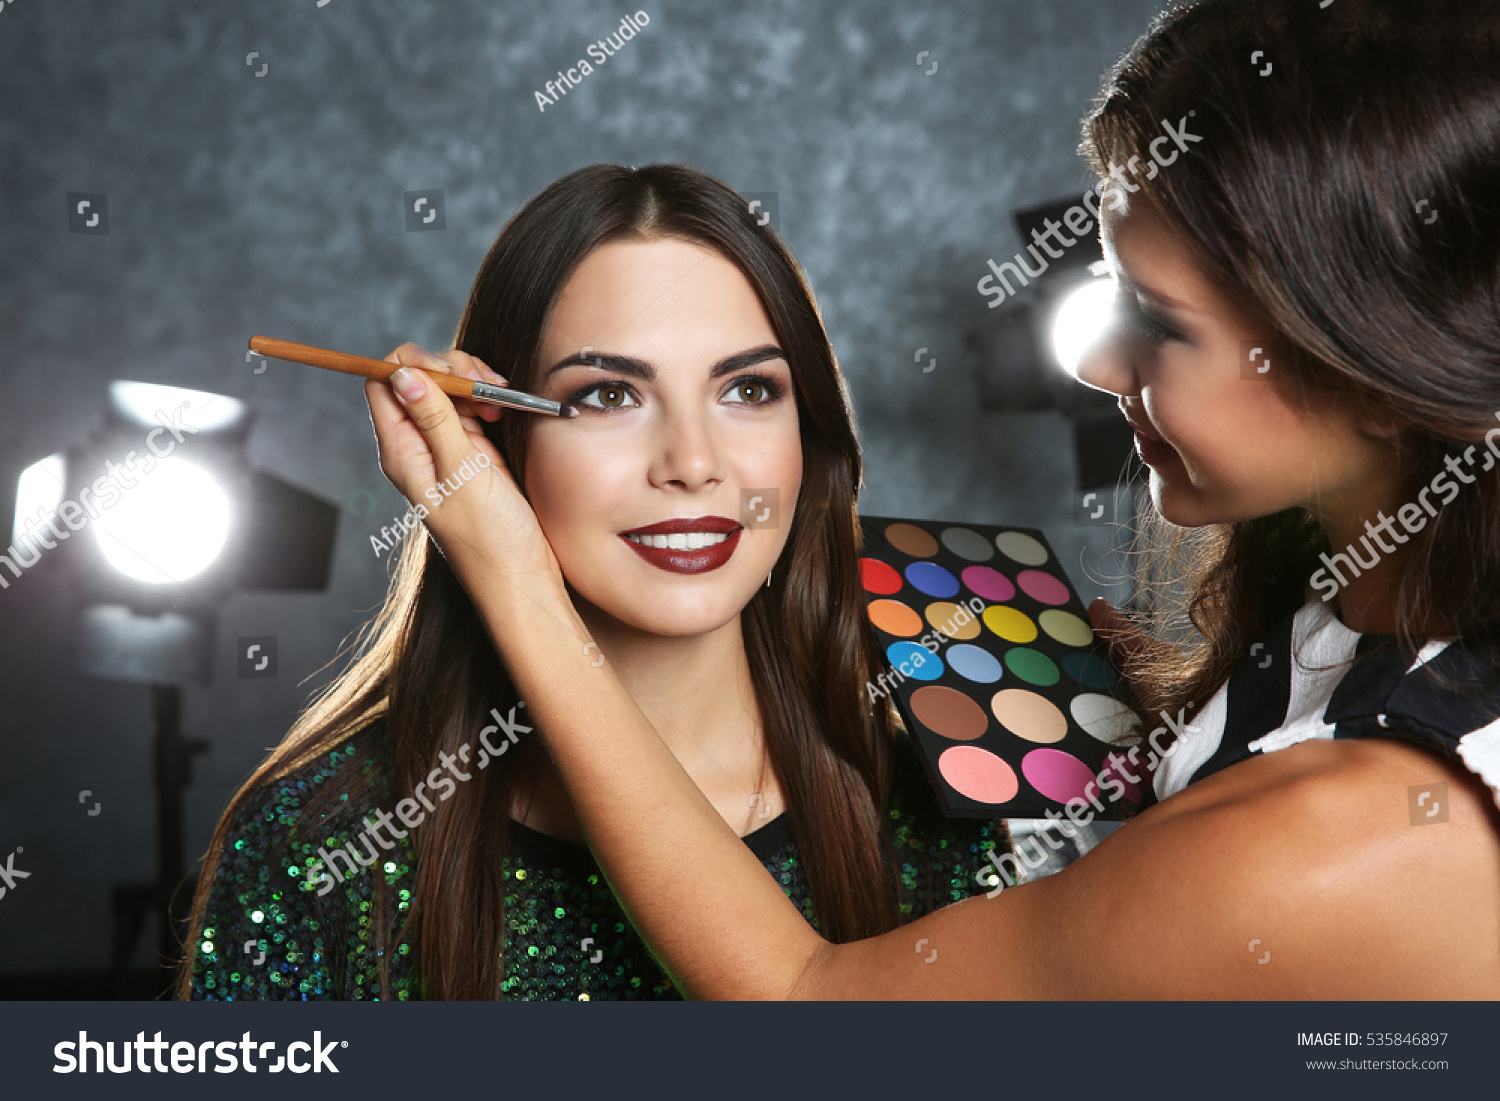 stock-photo-professional-makeup-artist-working-with-beautiful-young-woman-535846897